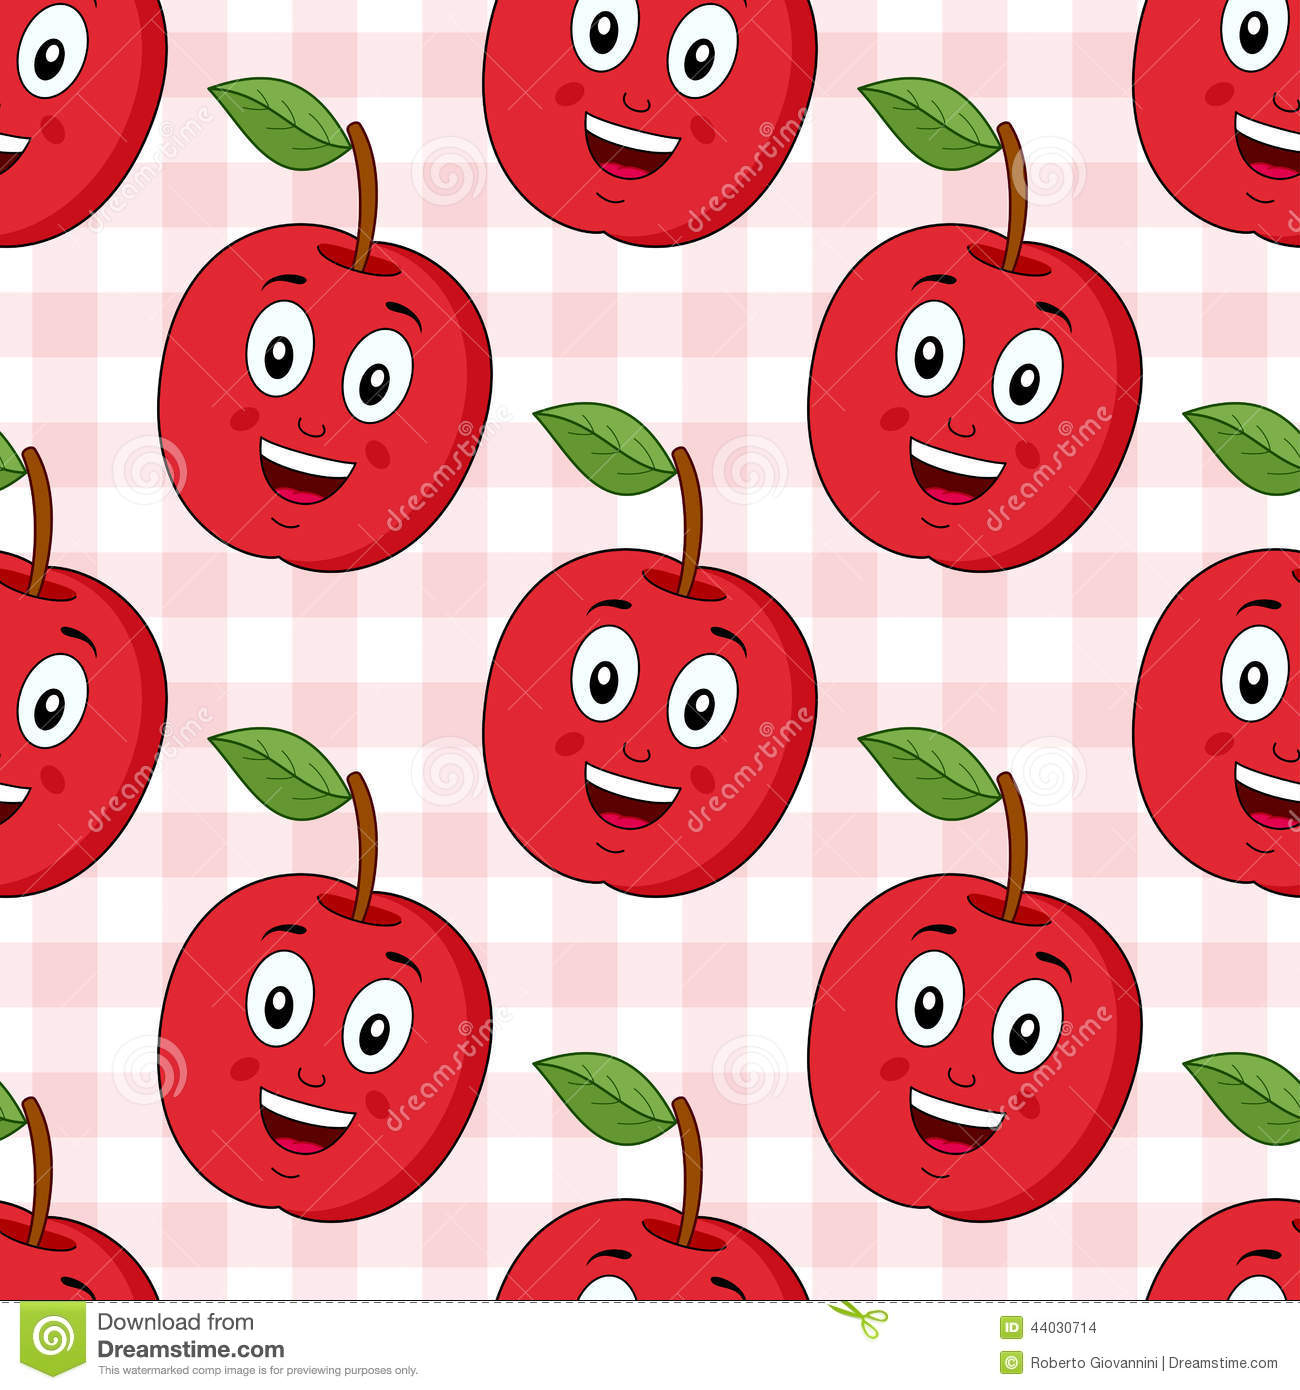 Stock Illustration Cartoon Red Apple Seamless Pattern Character Smiling Checkered Picnic Tablecloth Background Useful Also As Design Image44030714 in addition Royalty Free Stock Images Cockatoo Parrot Image27903299 also Stock Illustration Kawaii Kiwi Fruit Icon Illustration Eps Image88015742 in addition Stock Illustration Happy Smiling Yellow Cartoon Banana Fruit Tropical Ripe Isolated White Background Image42729024 in addition Banana Nut Muffins. on banana cartoon character